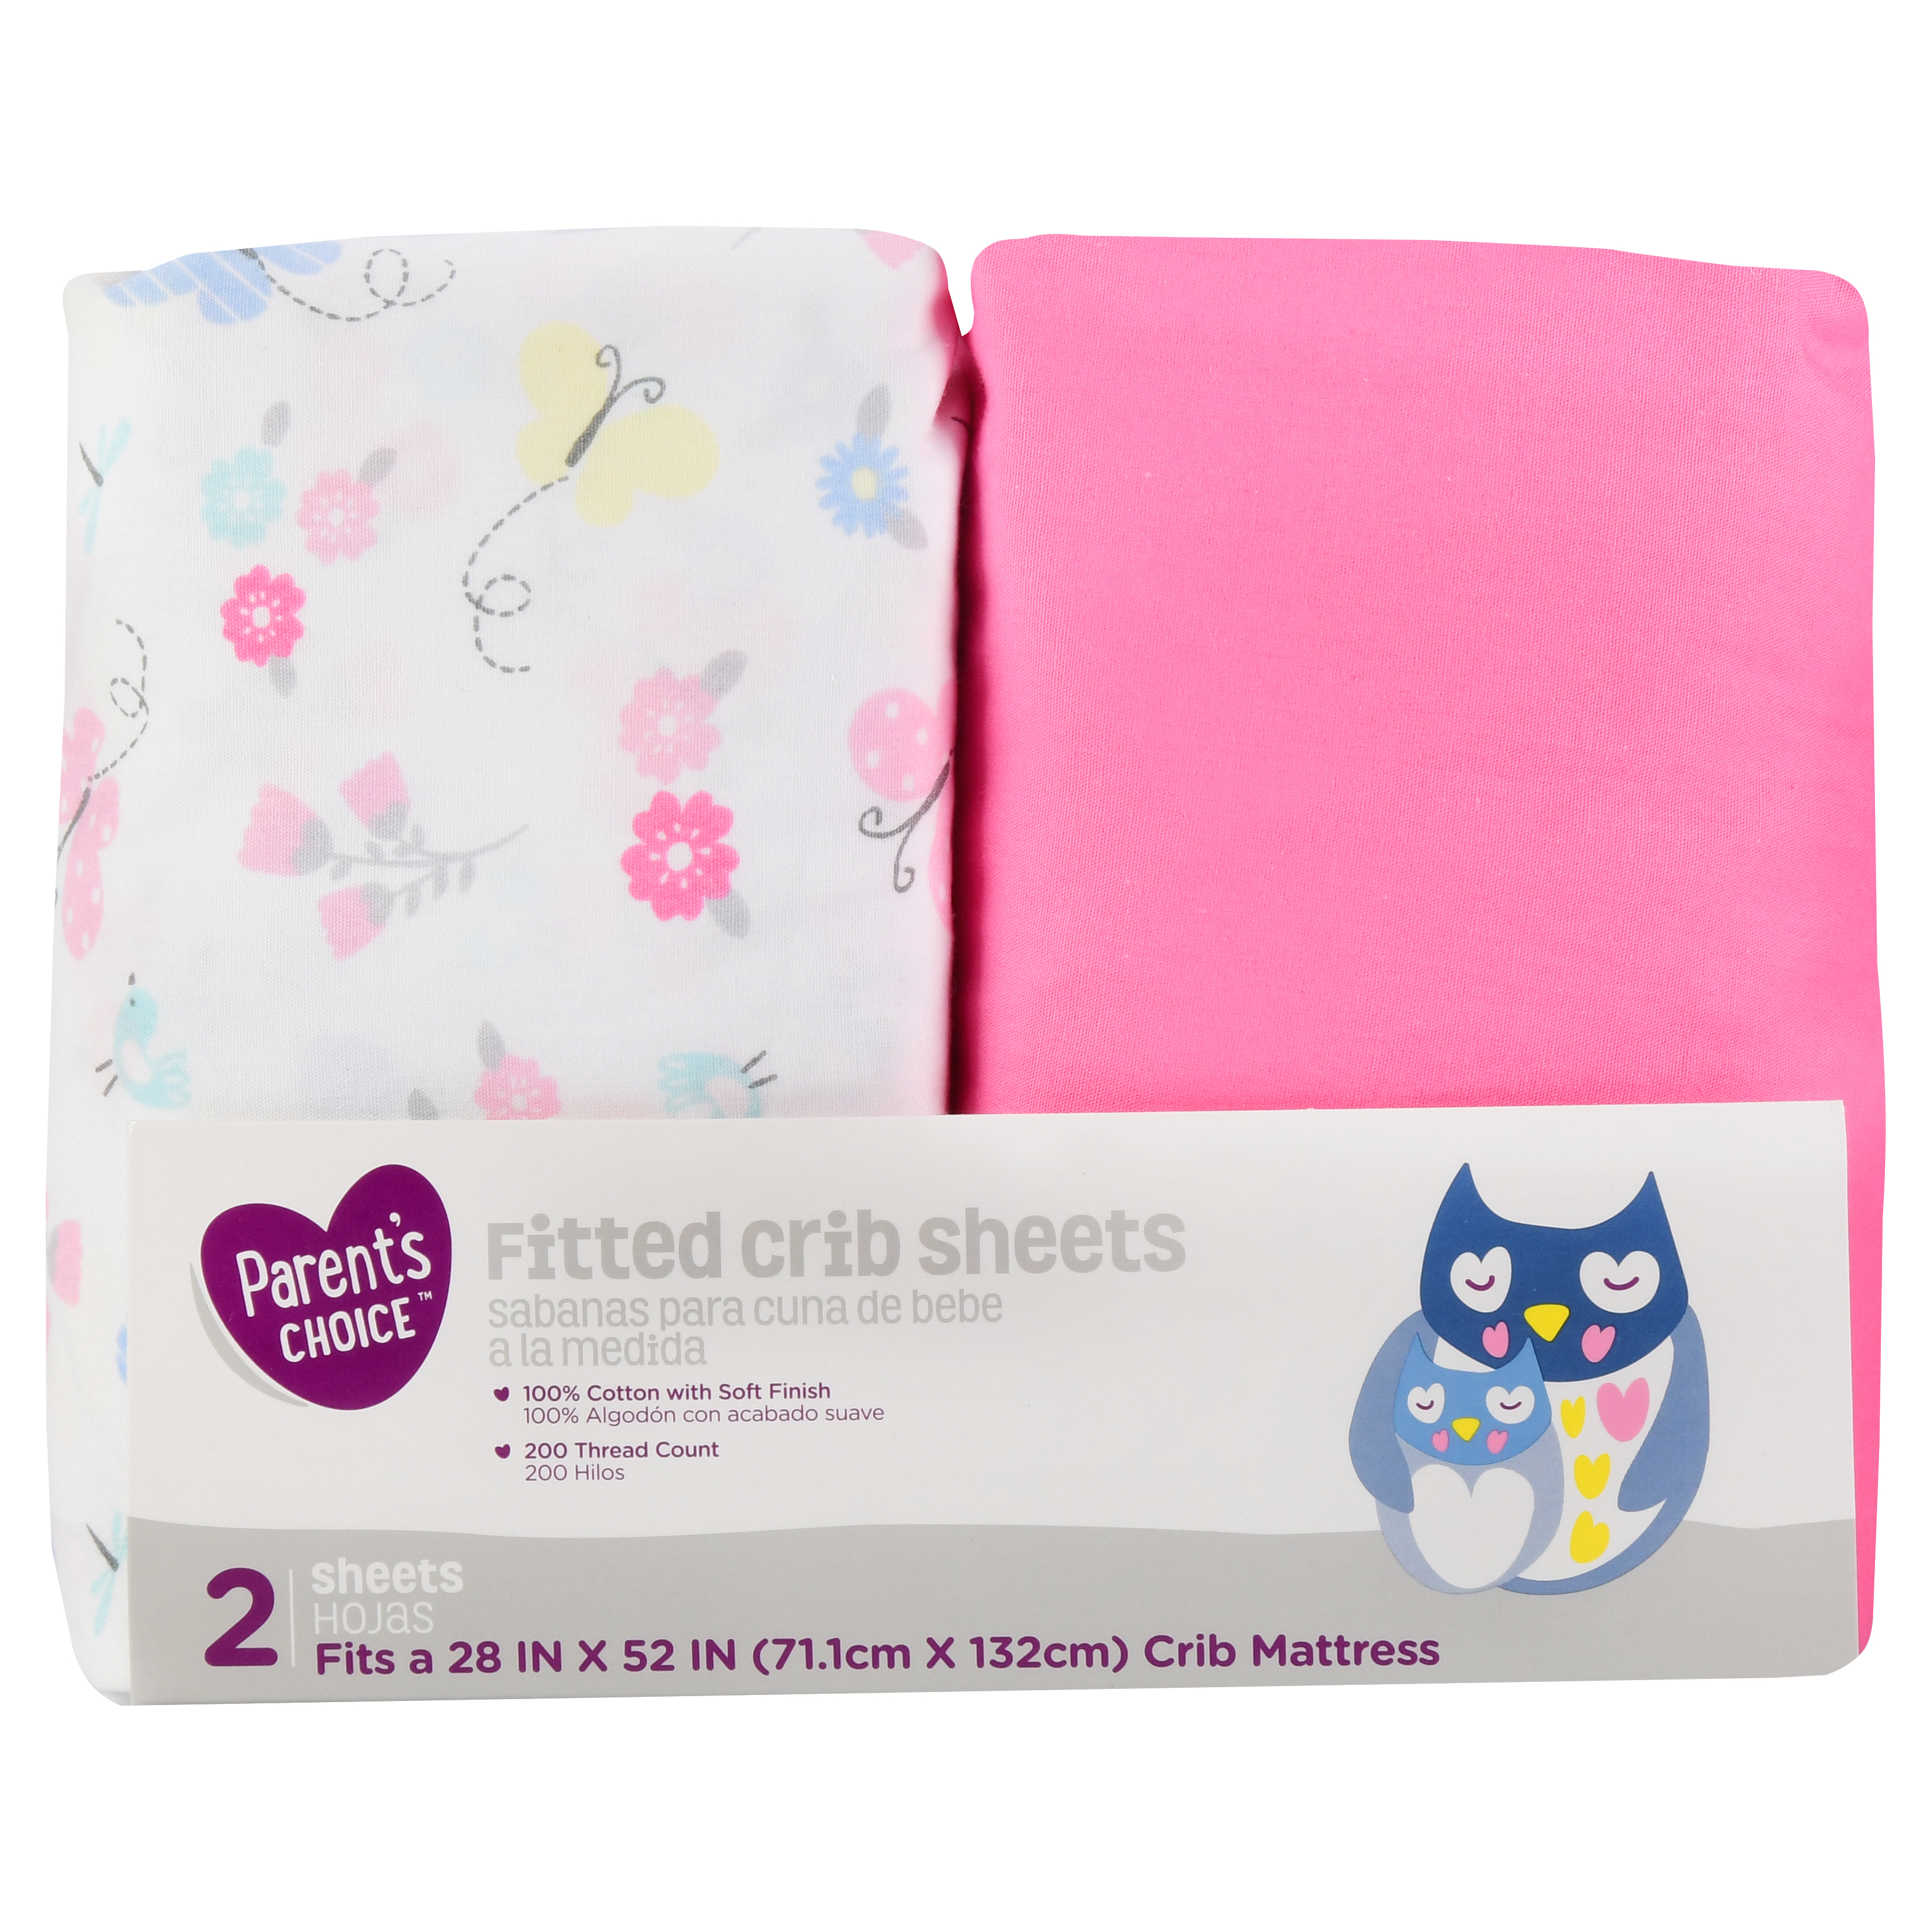 Parent's Choice Fitted Crib Sheets, Butterfly, 2 count, 28 in X 52 in